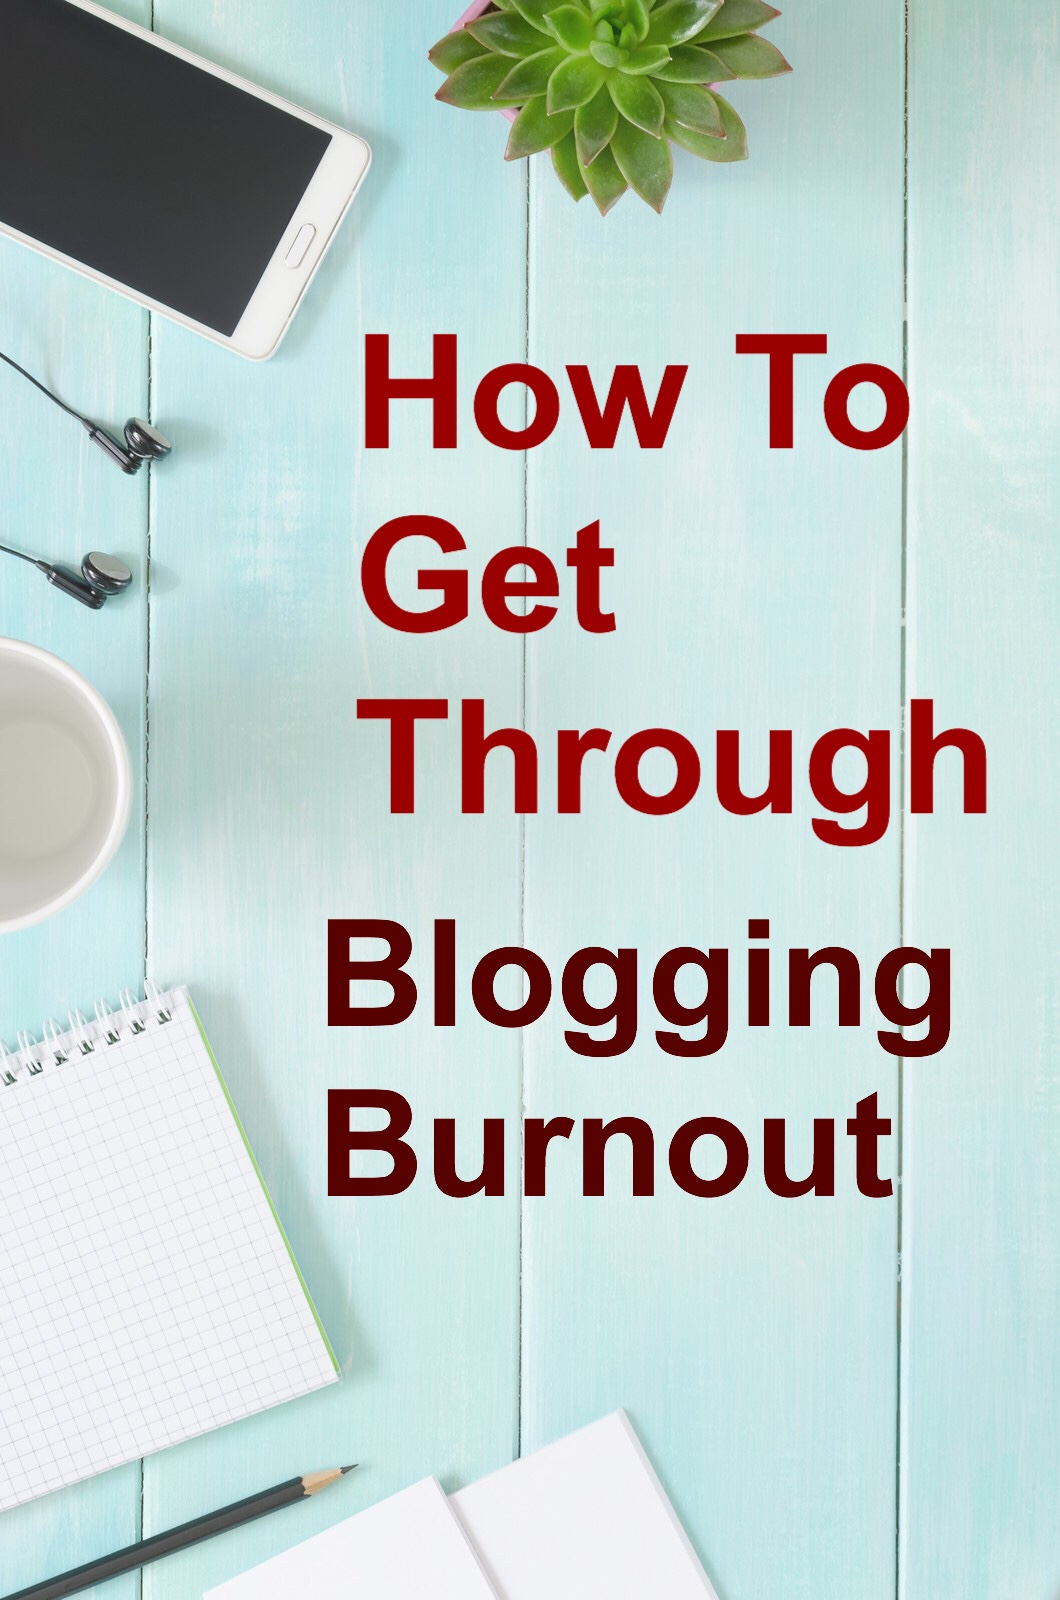 How to Get Through Blogging pin